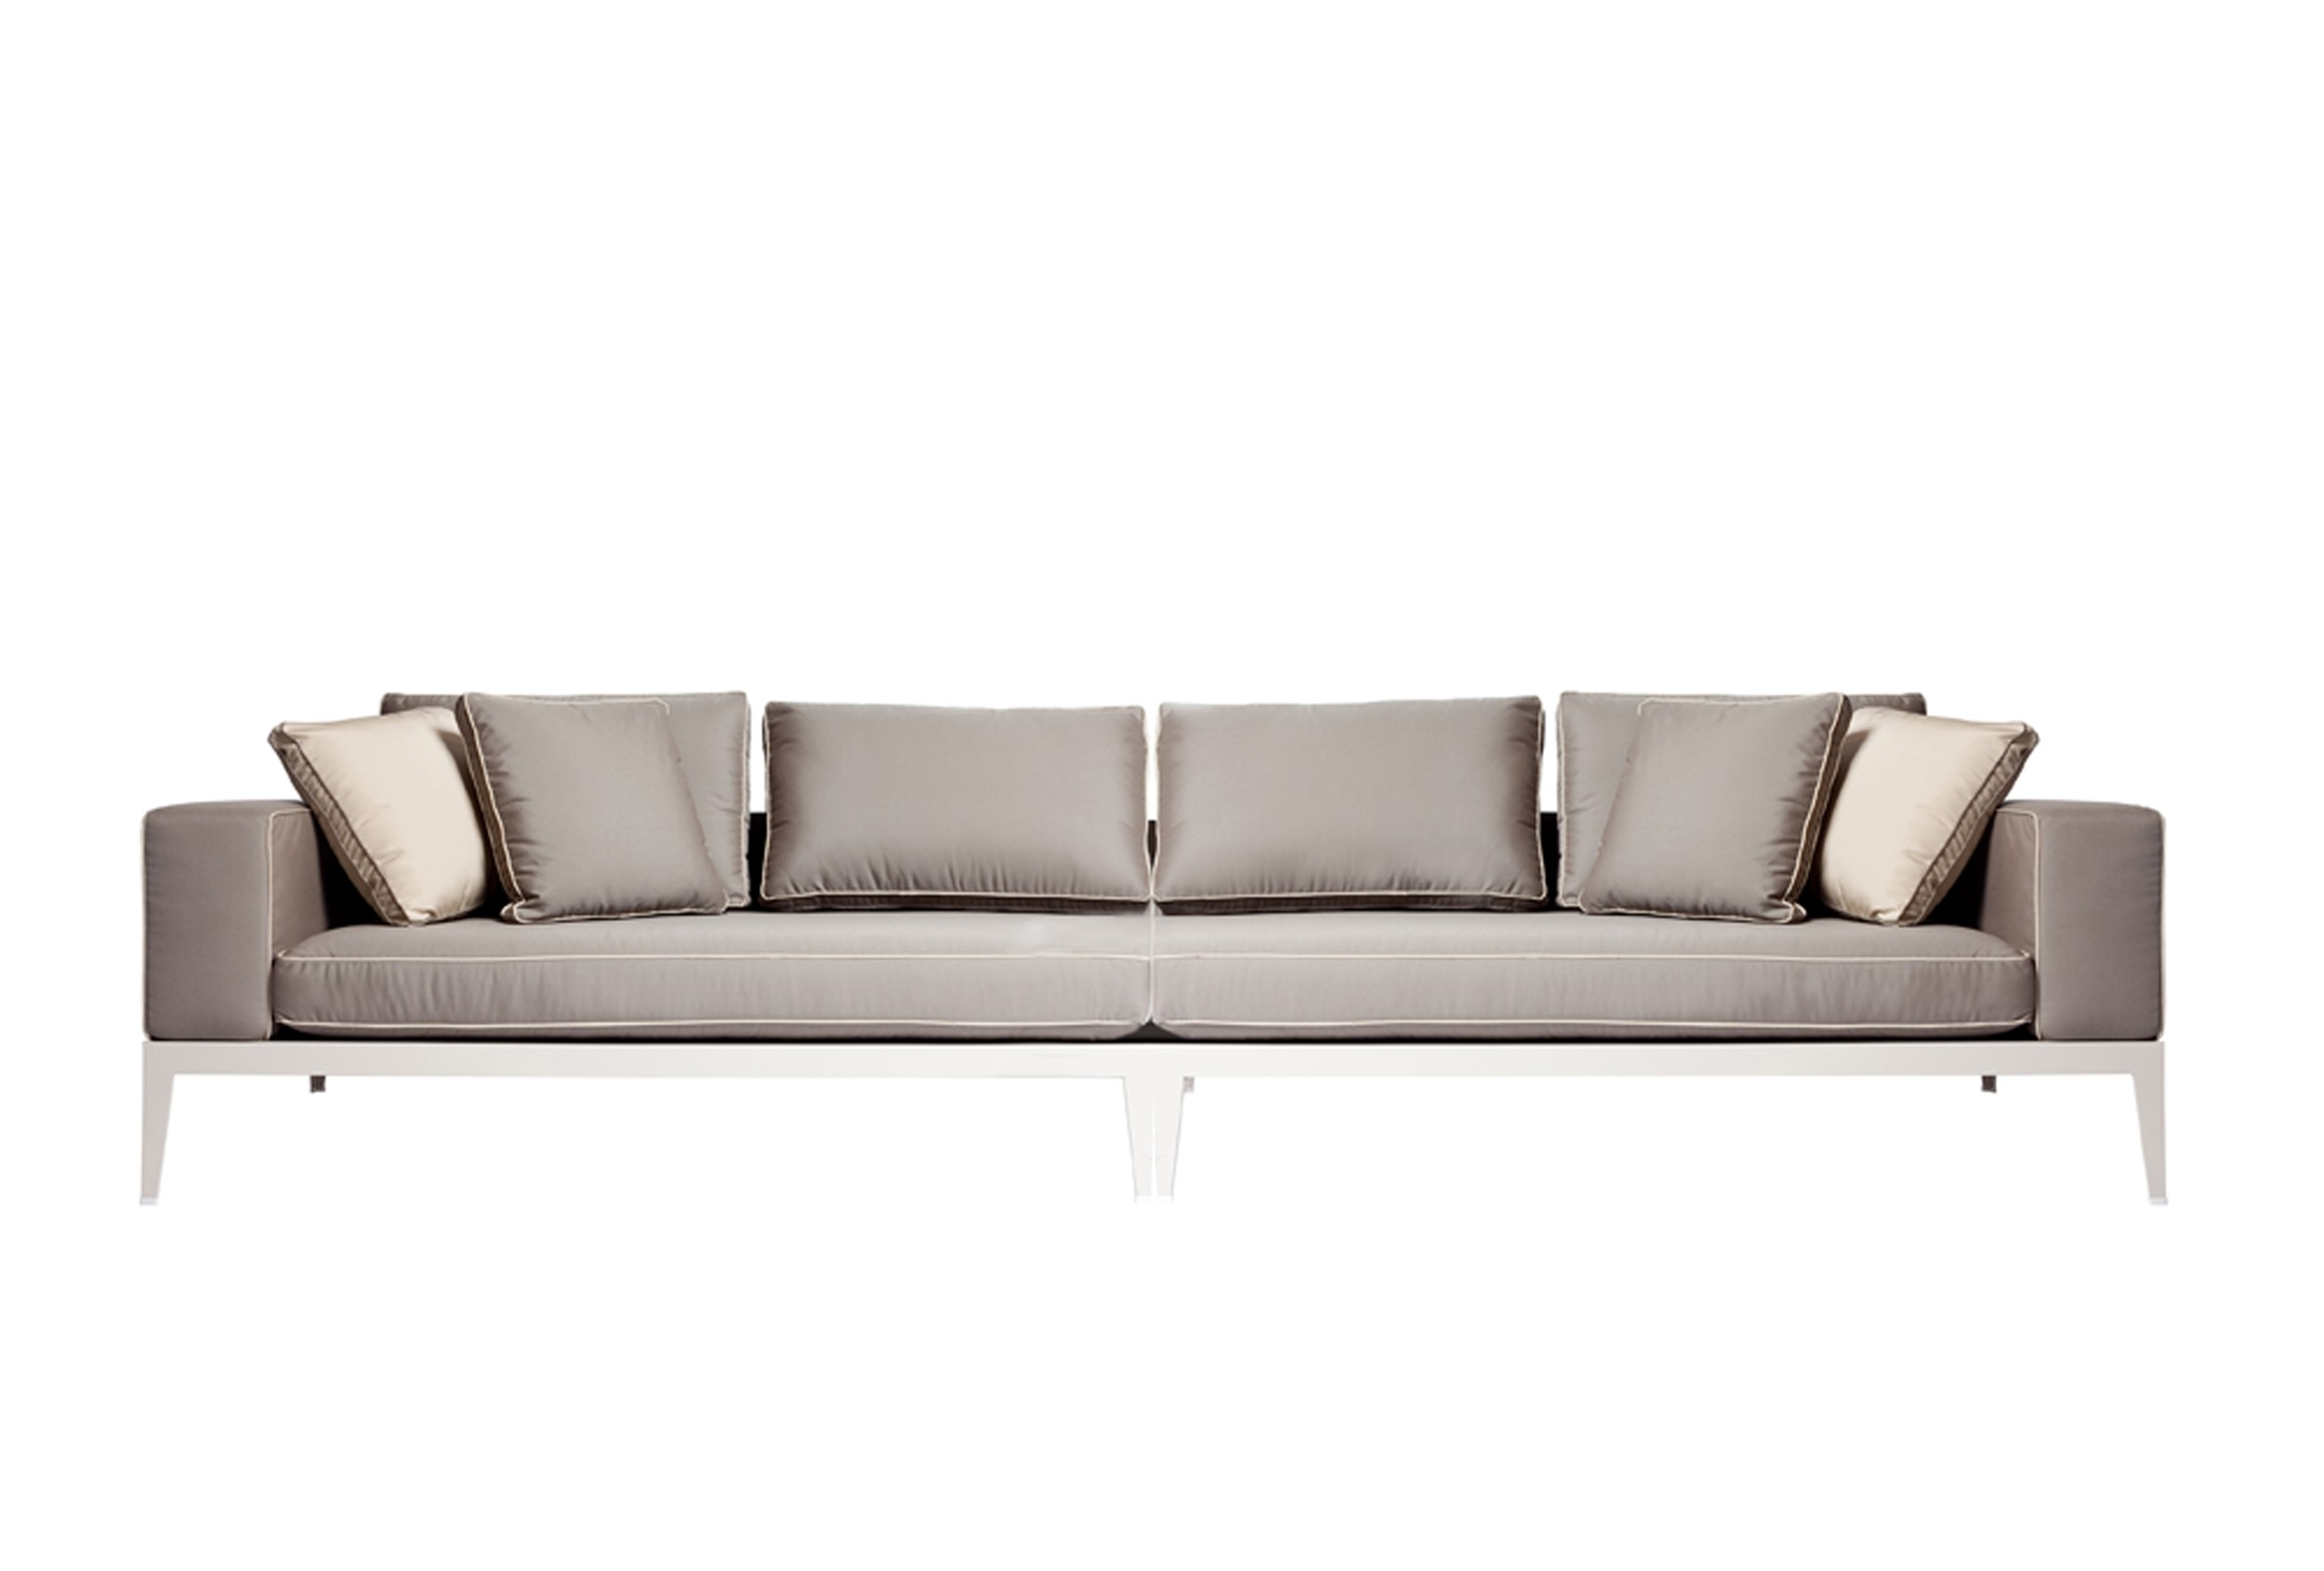 Balmoral 4 Seater Sofa Viesso In 4 Seater Sofas (Image 4 of 15)